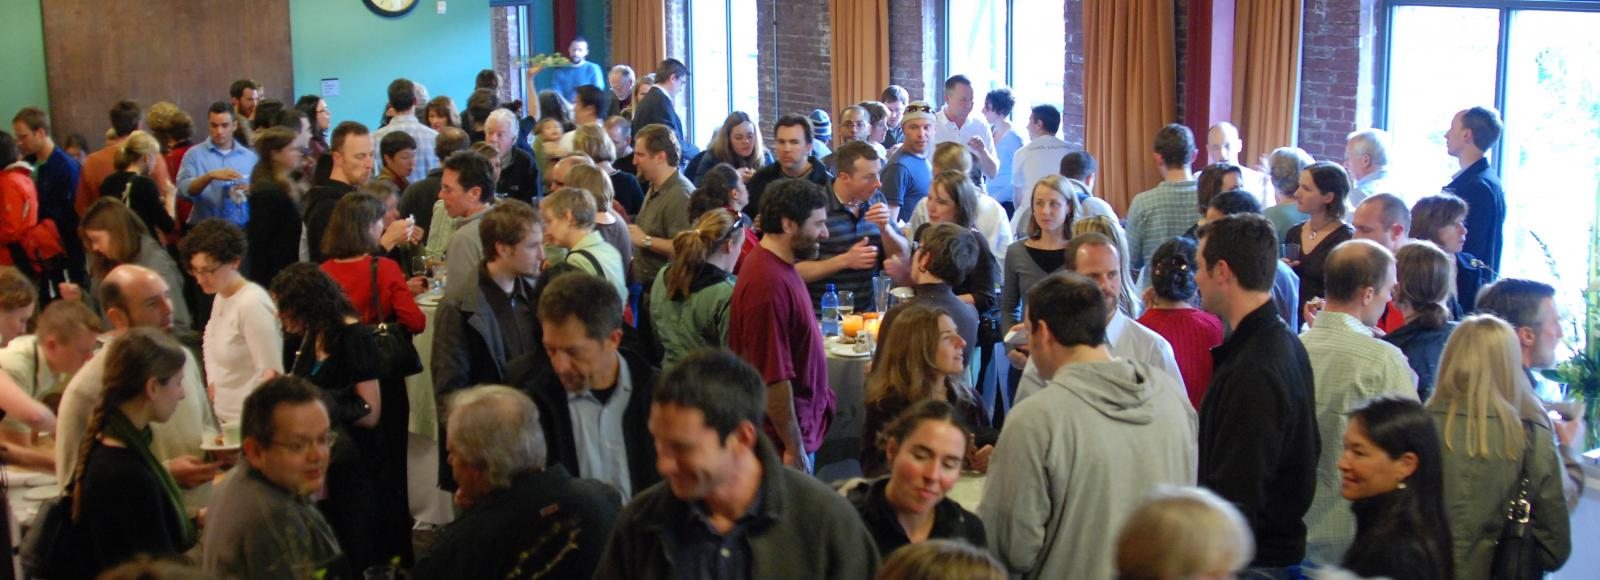 Crowd of people - 200 or so - inside the BFJCC, Natural Capital Center, Portland